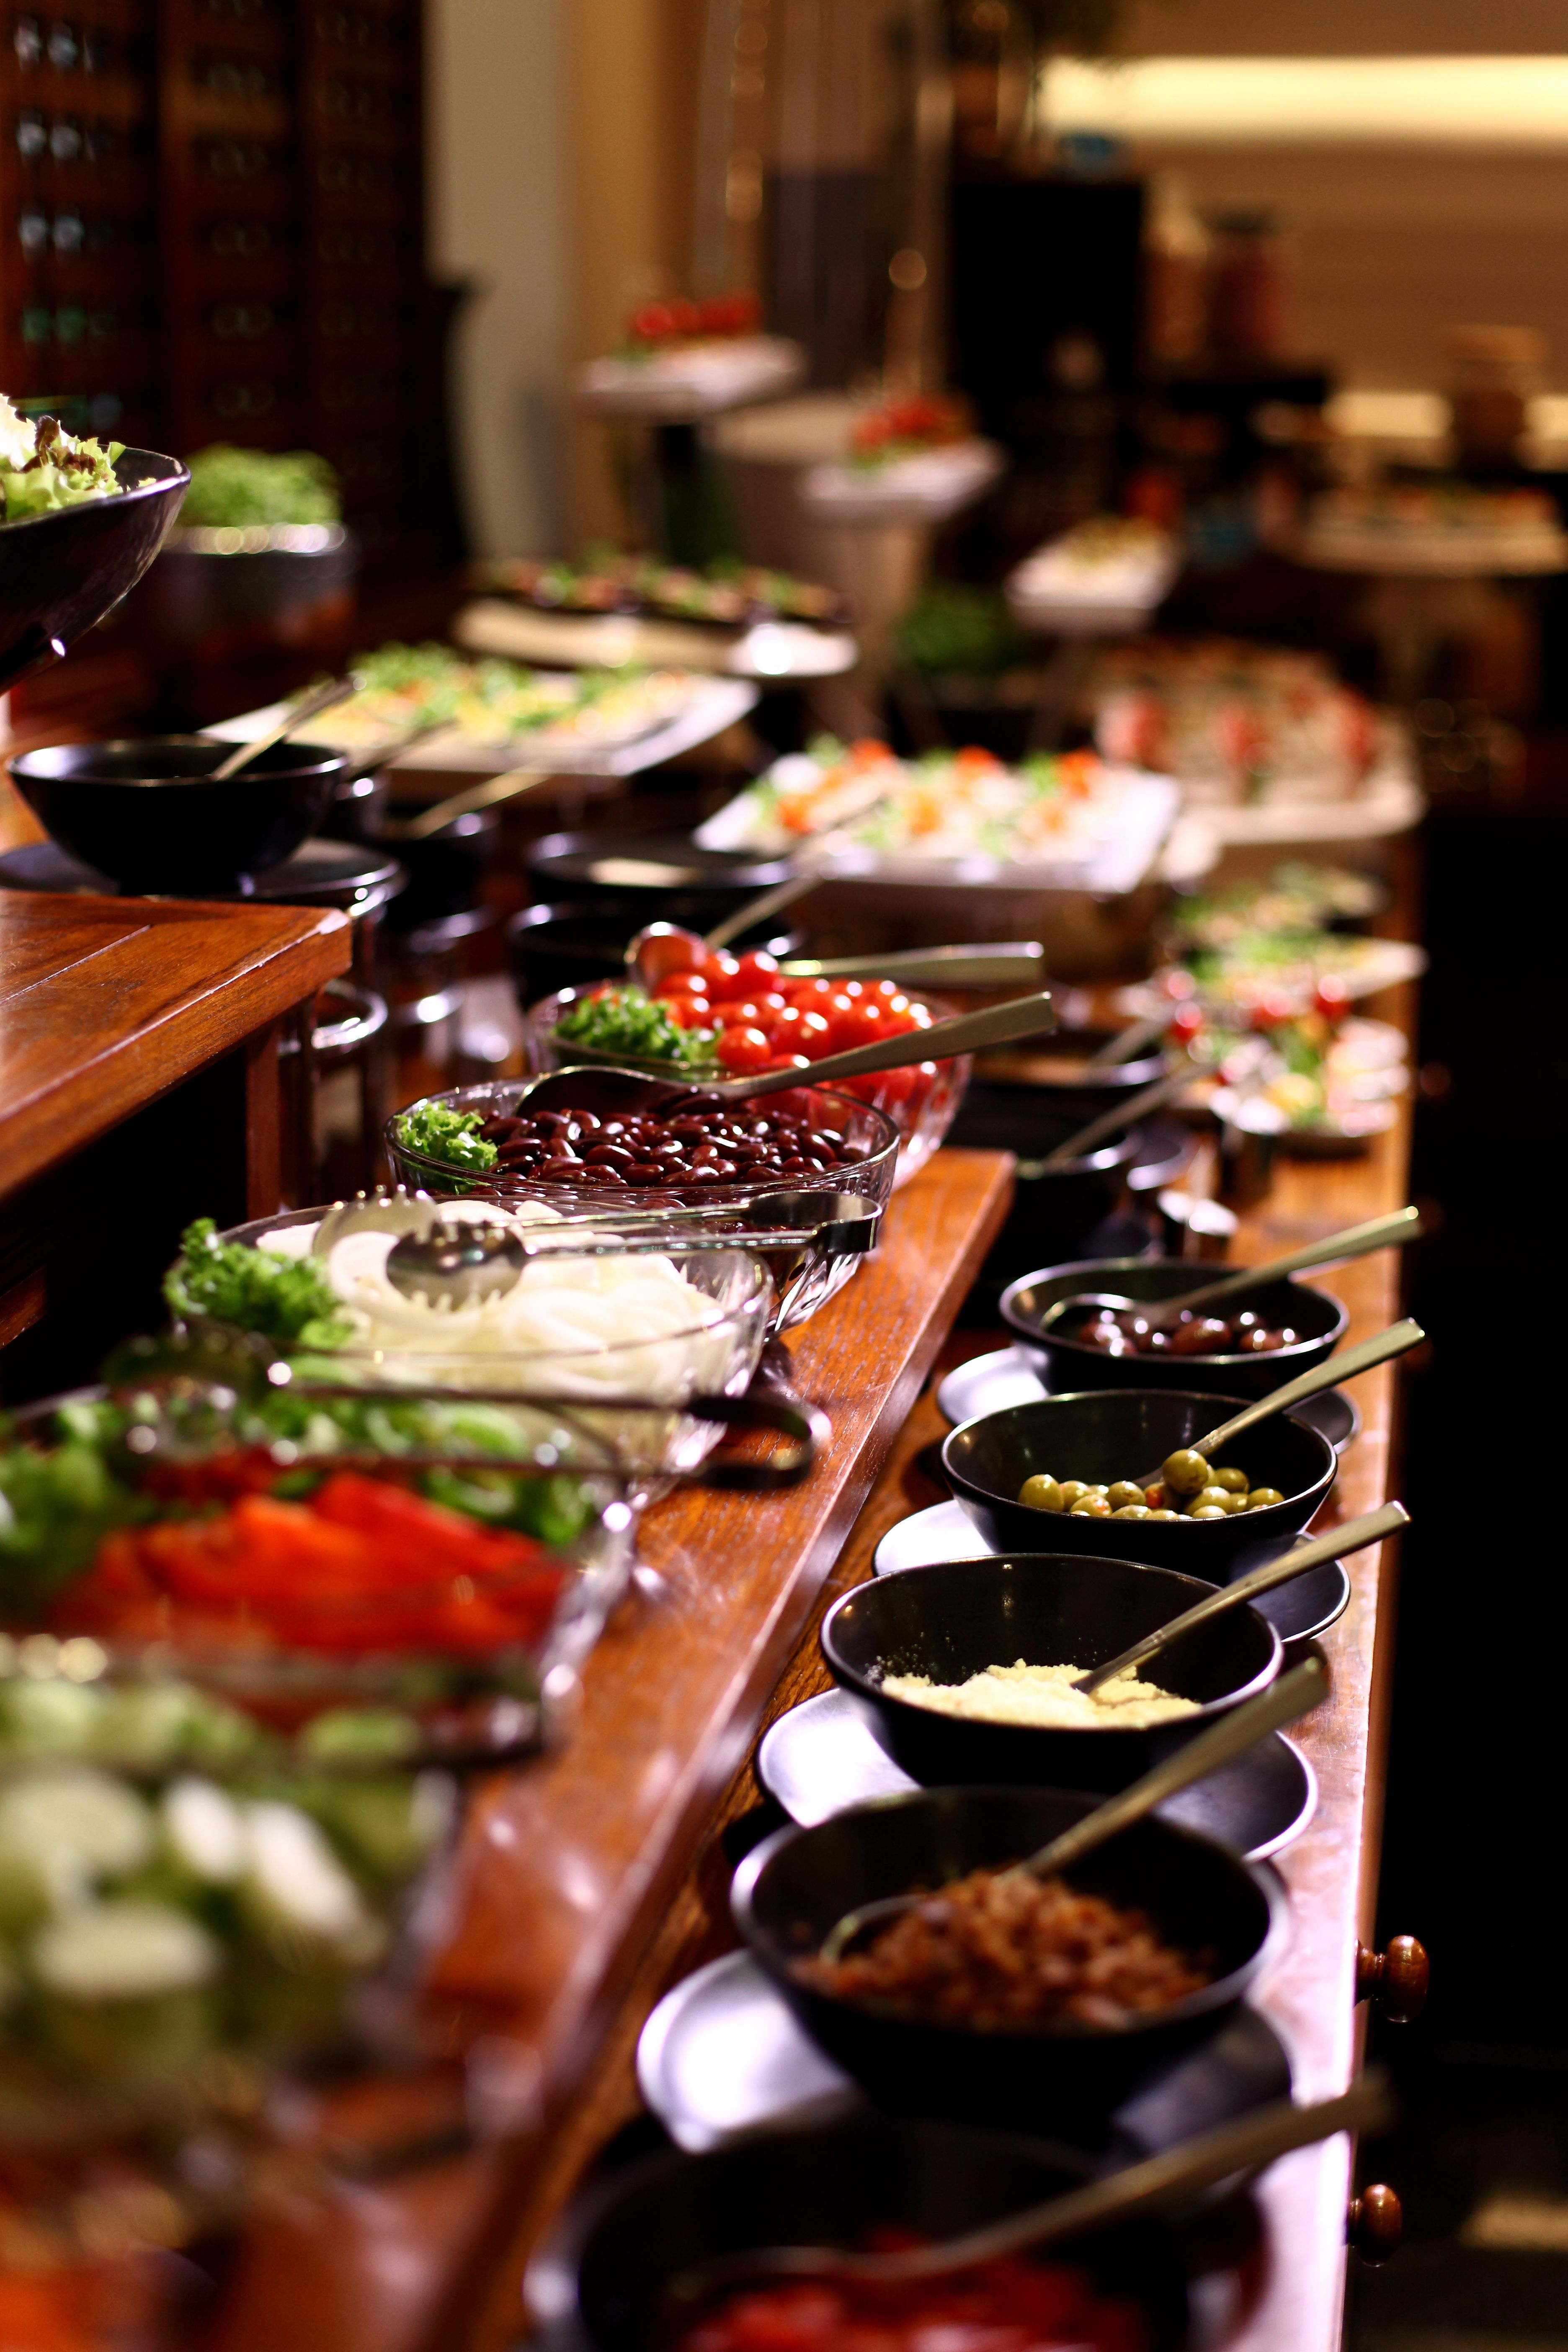 """Rio Restaurant & Wine Bar: Dinner Buffet """"All You Can Eat Pertaining To Contemporary Wine Bar Buffets (Gallery 18 of 30)"""